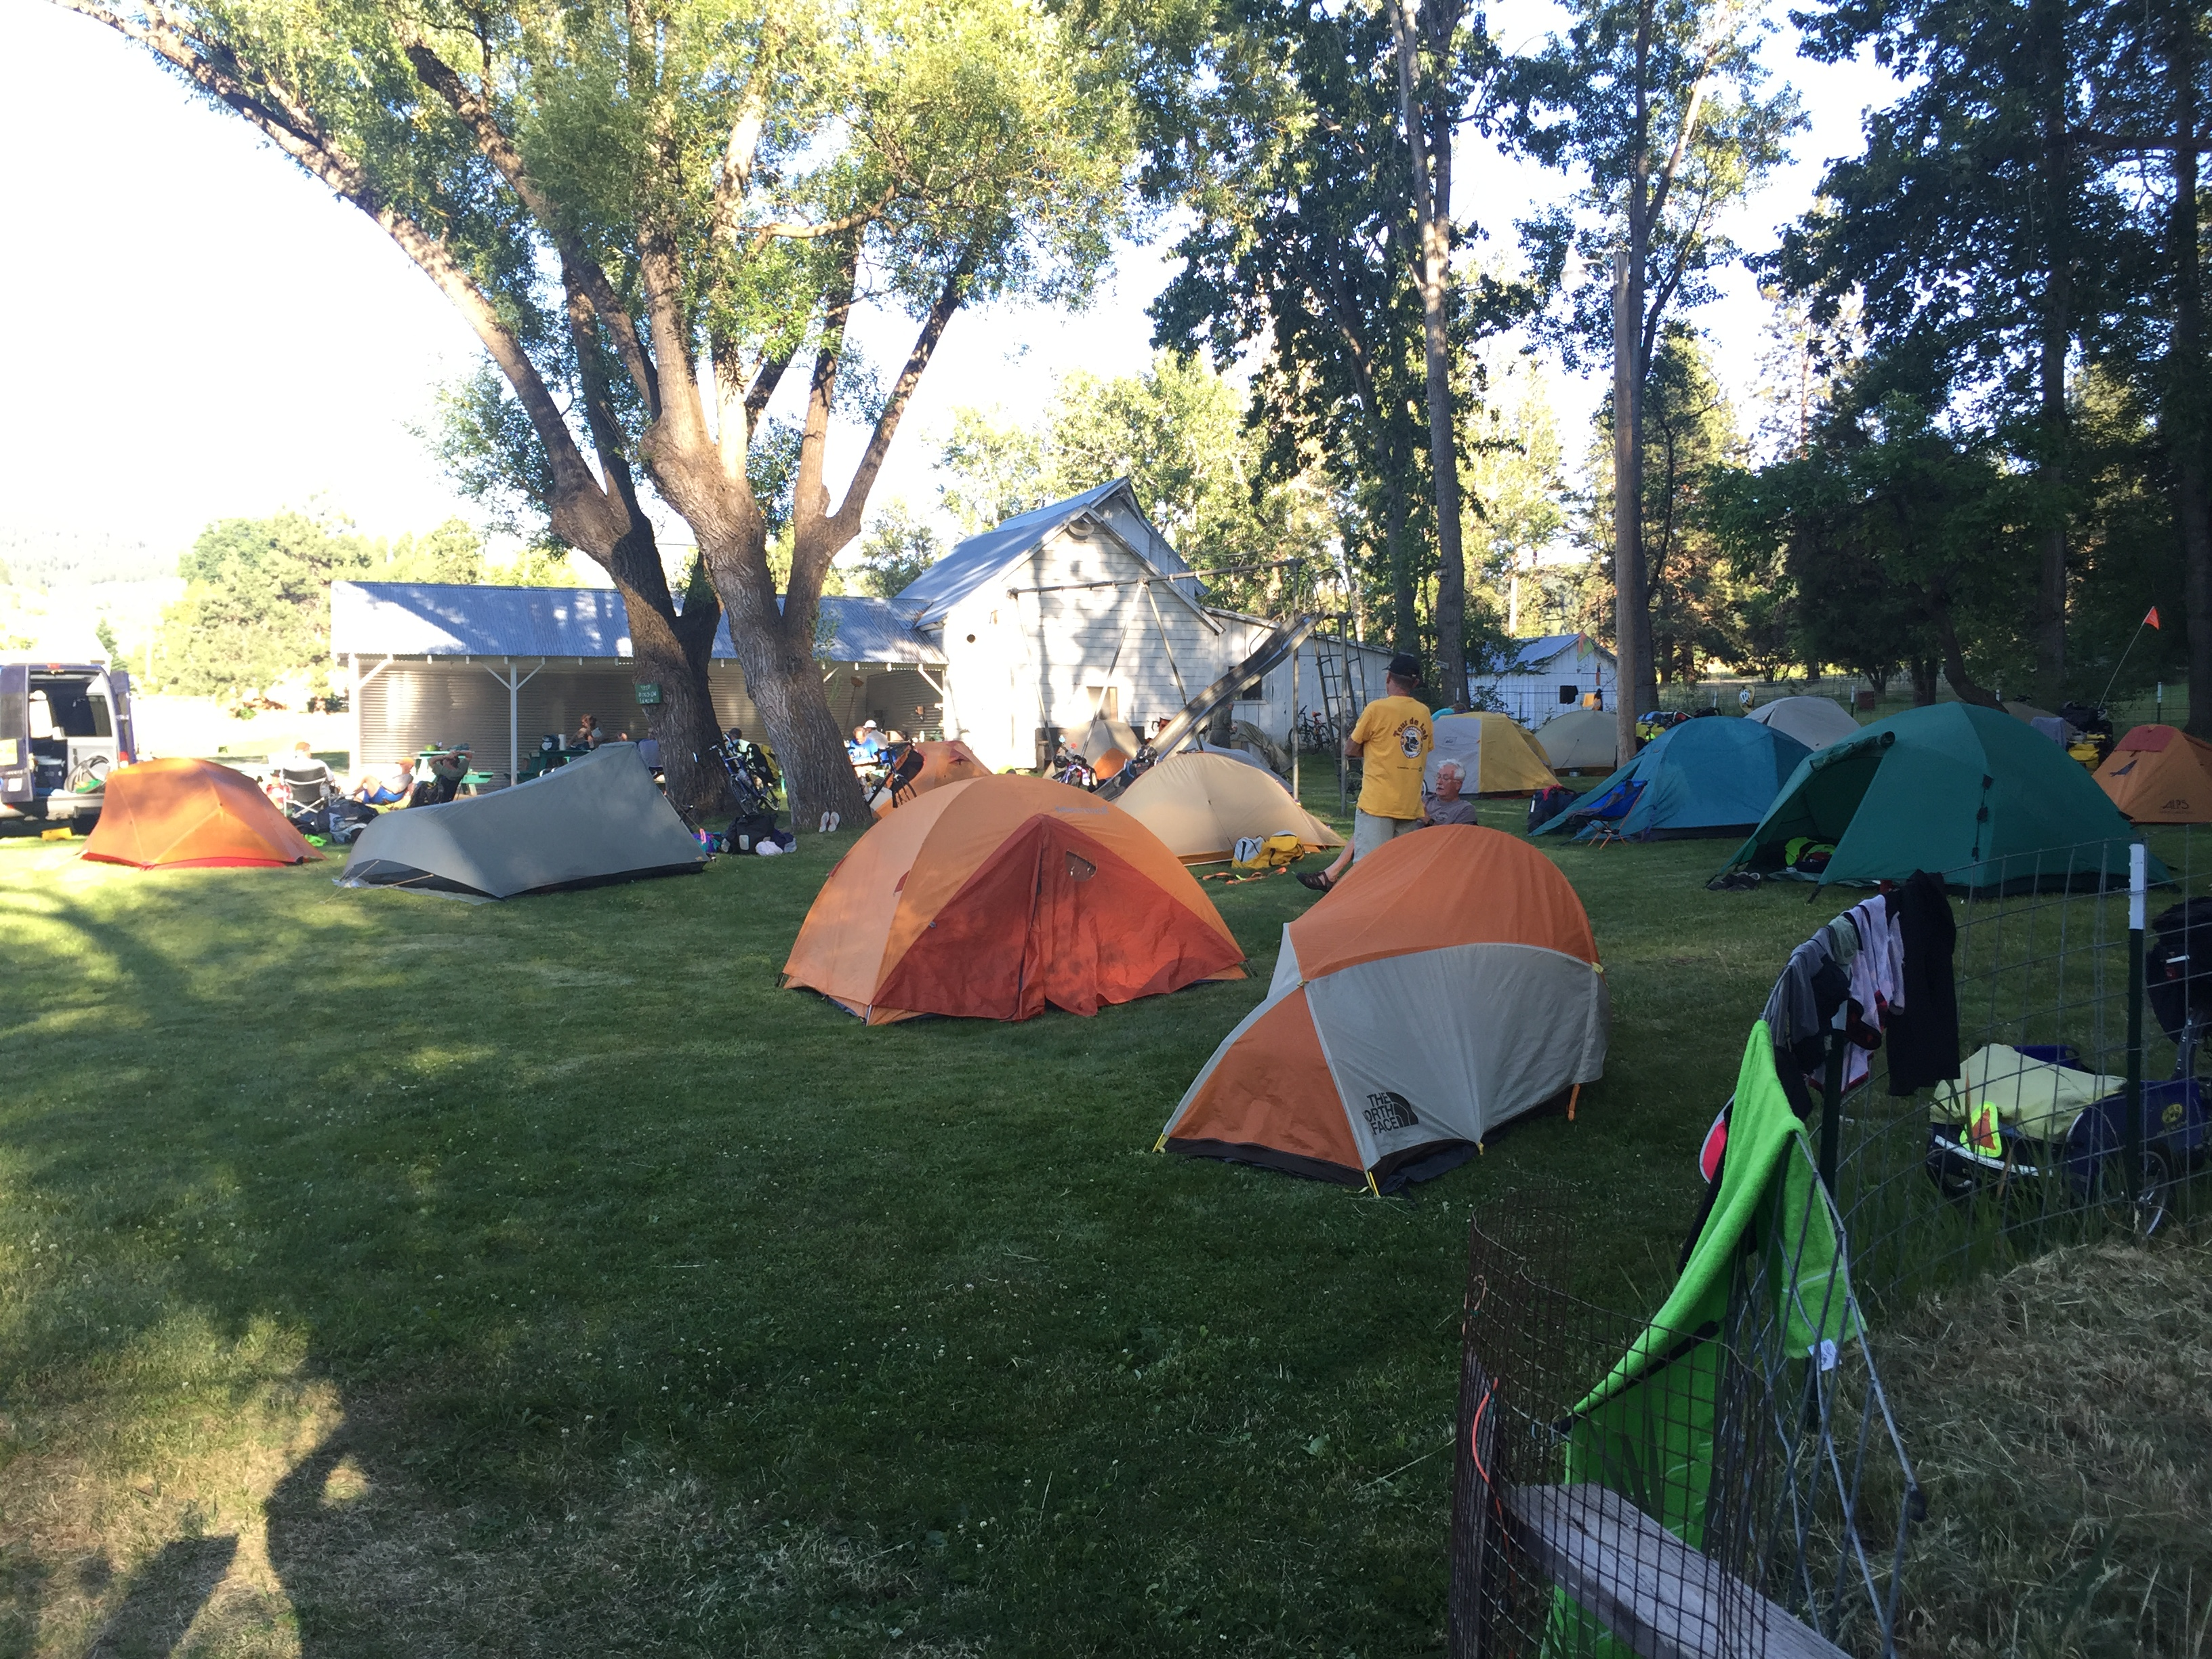 Camping at Cove Warm Springs